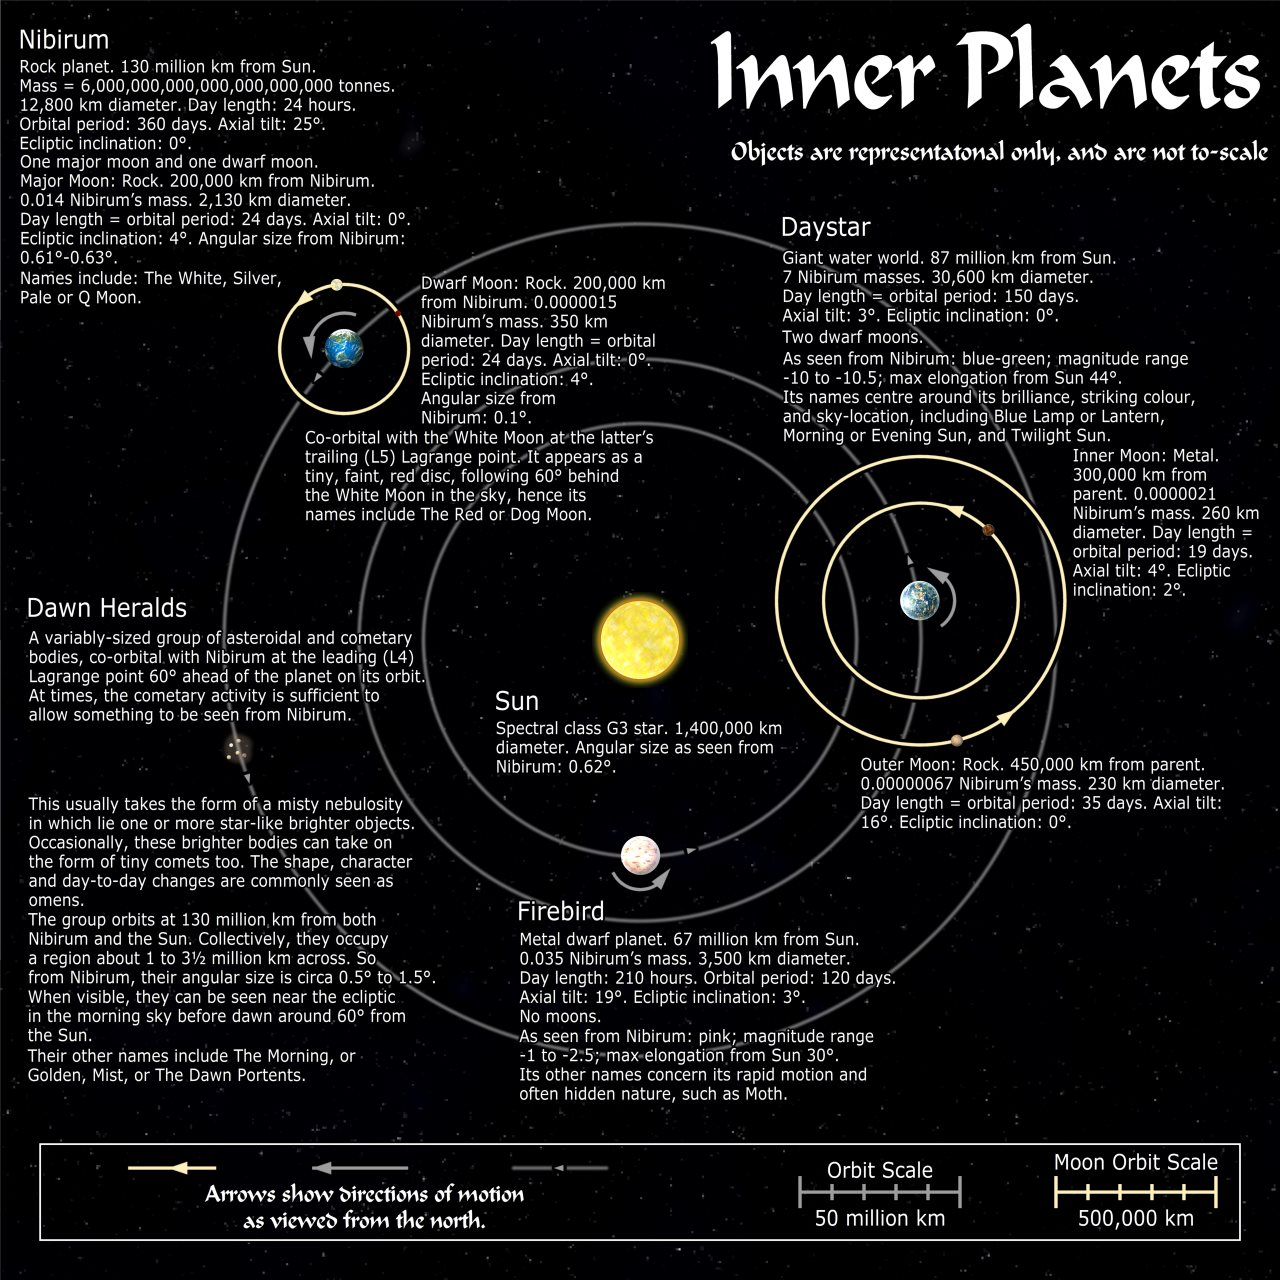 Nibirum Map: Nibirum Solar System Map - Inner Planets by Wyvern